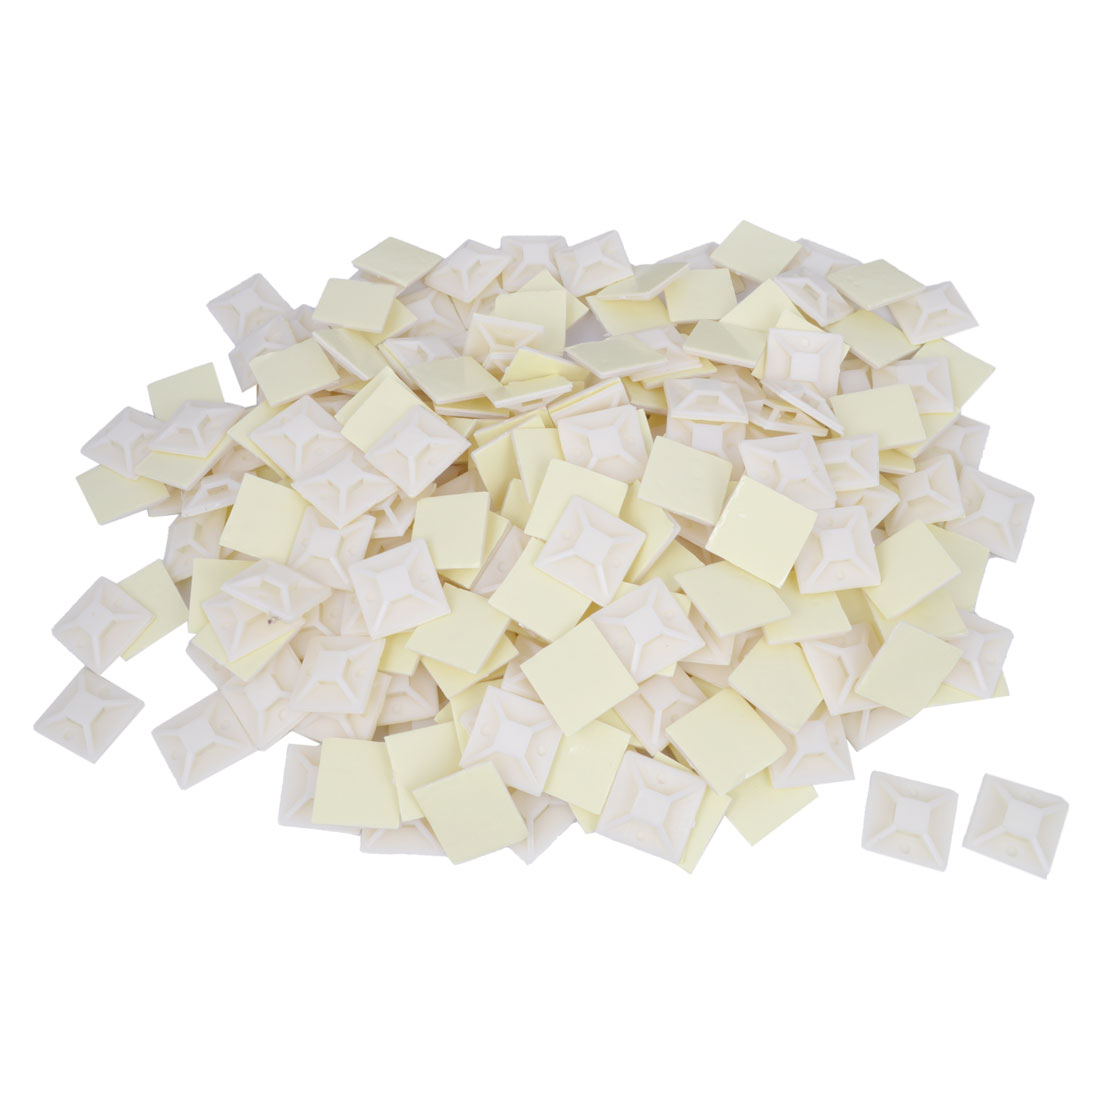 250 Pcs Plastic Self Adhesive Cable Tie Mount Base 40mm x 40mm